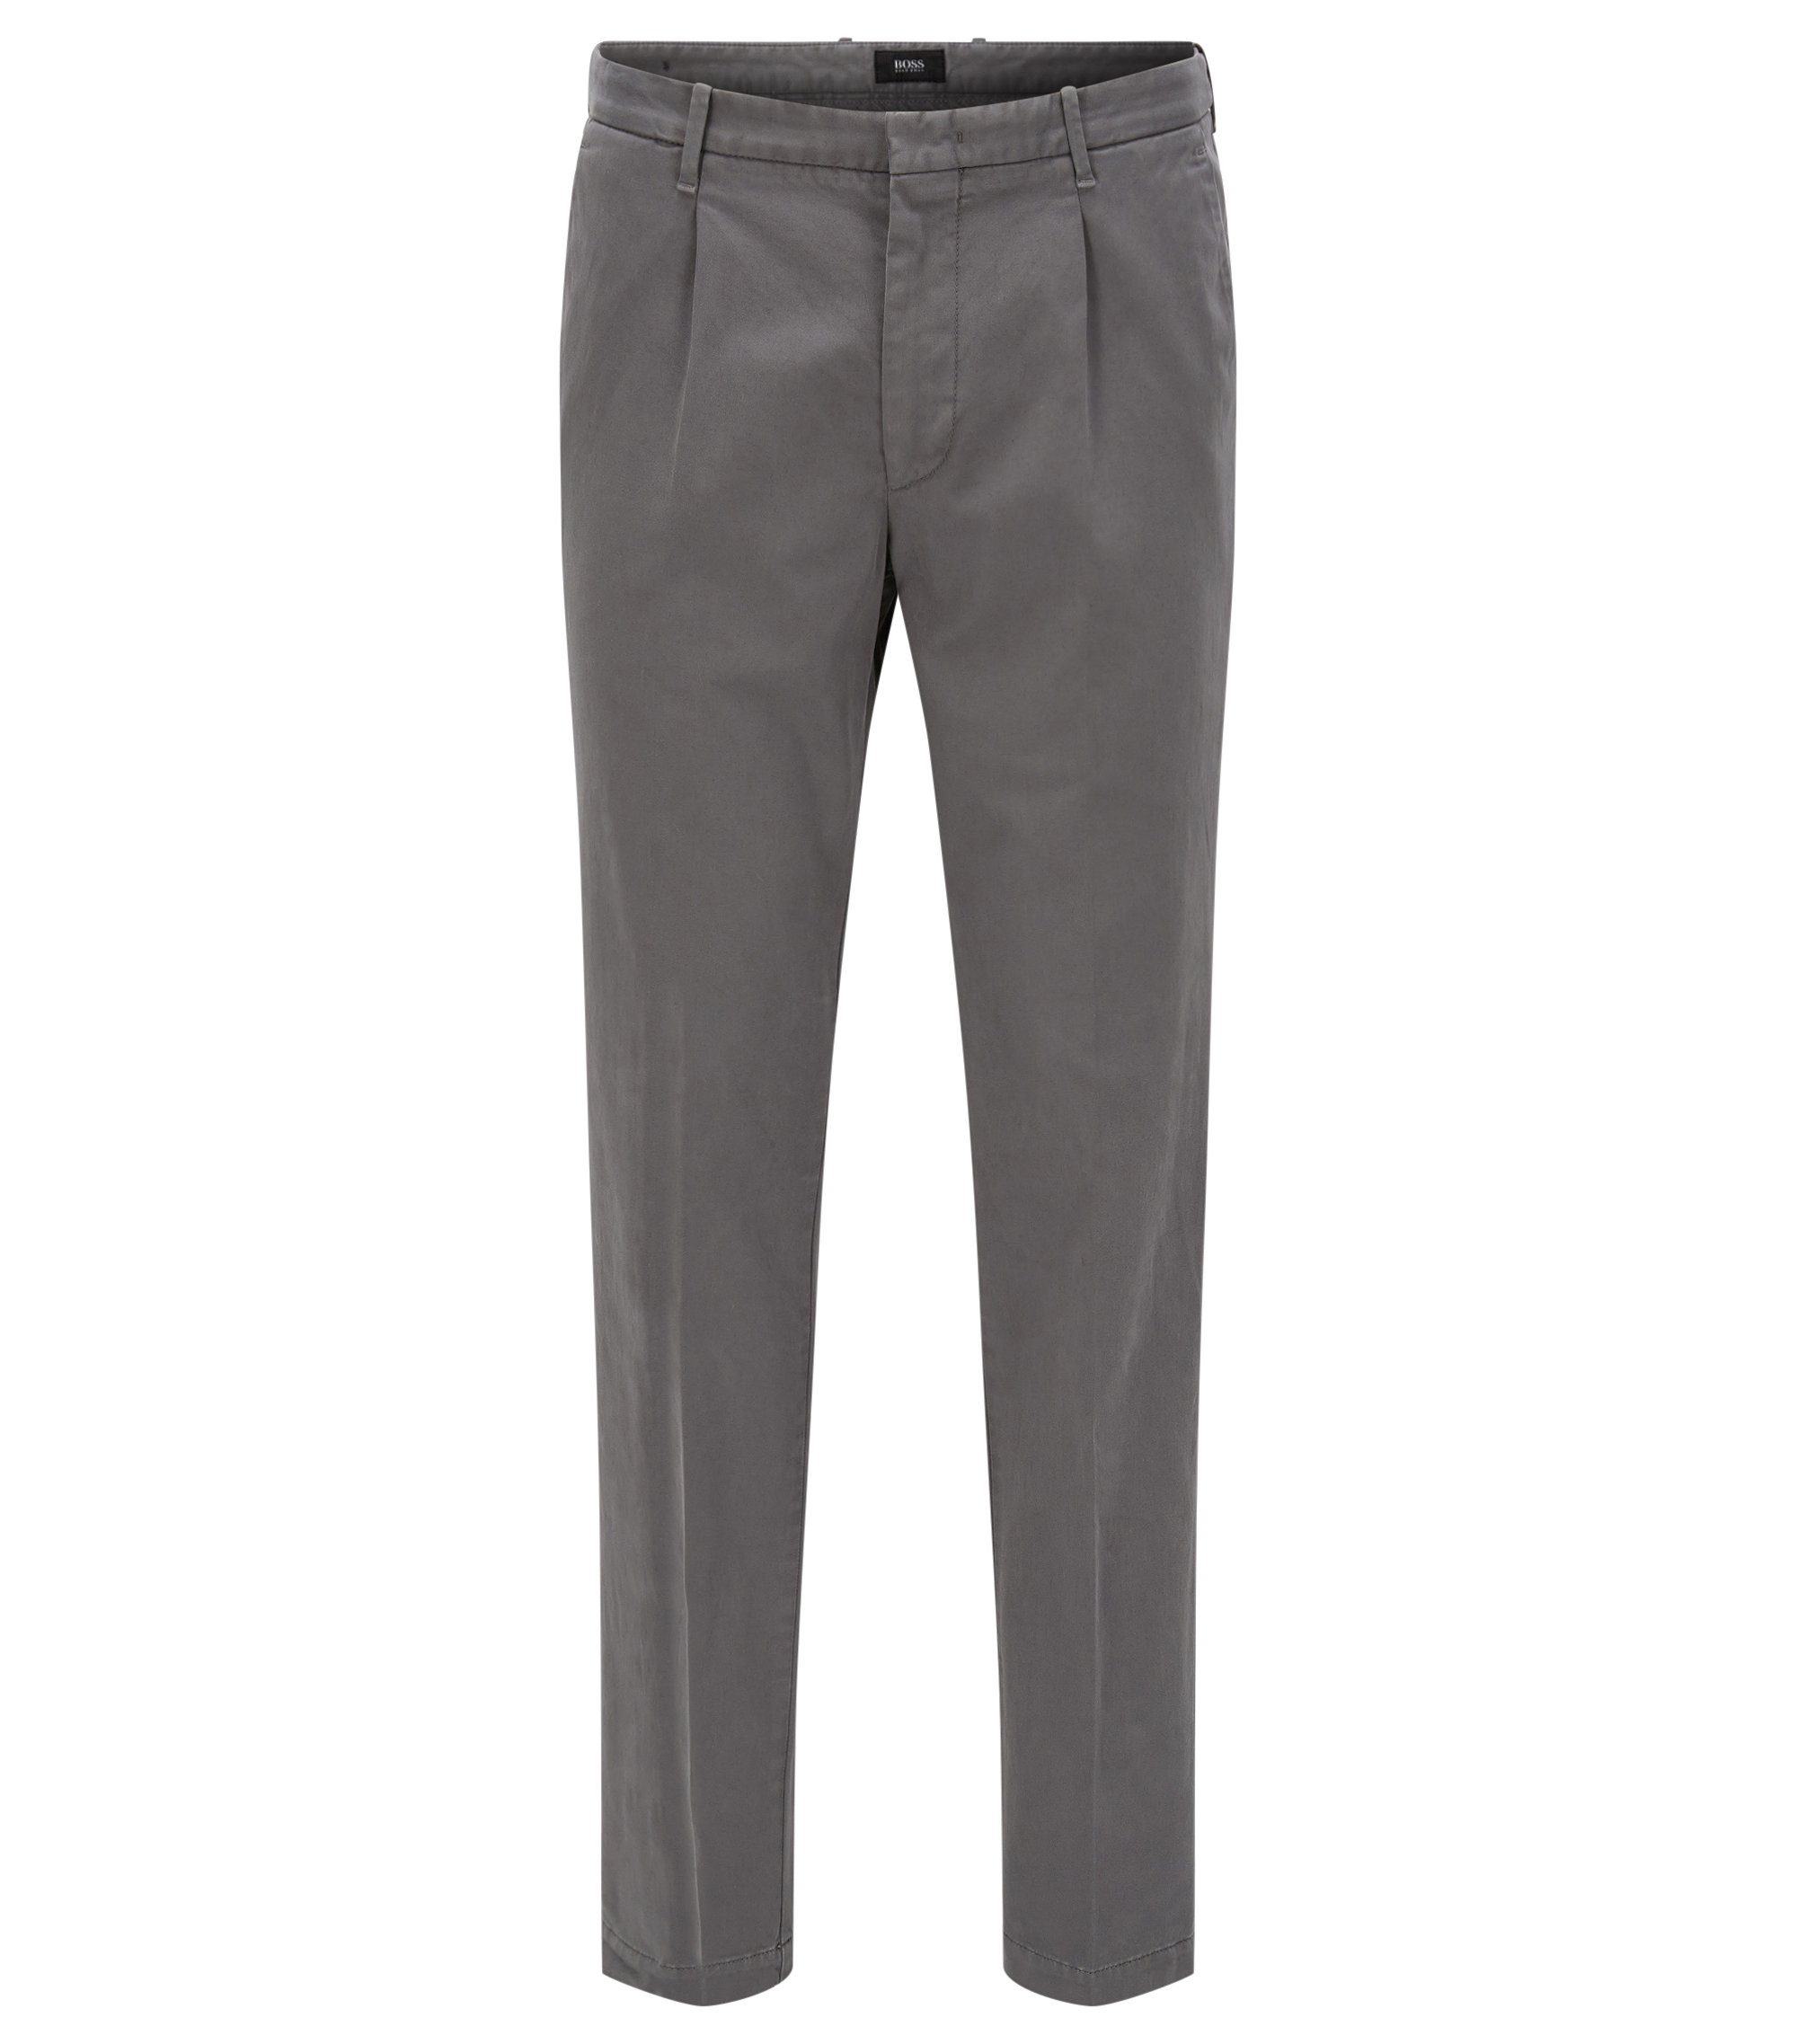 Slim-fit pleated chinos in Italian cotton blend, Grey